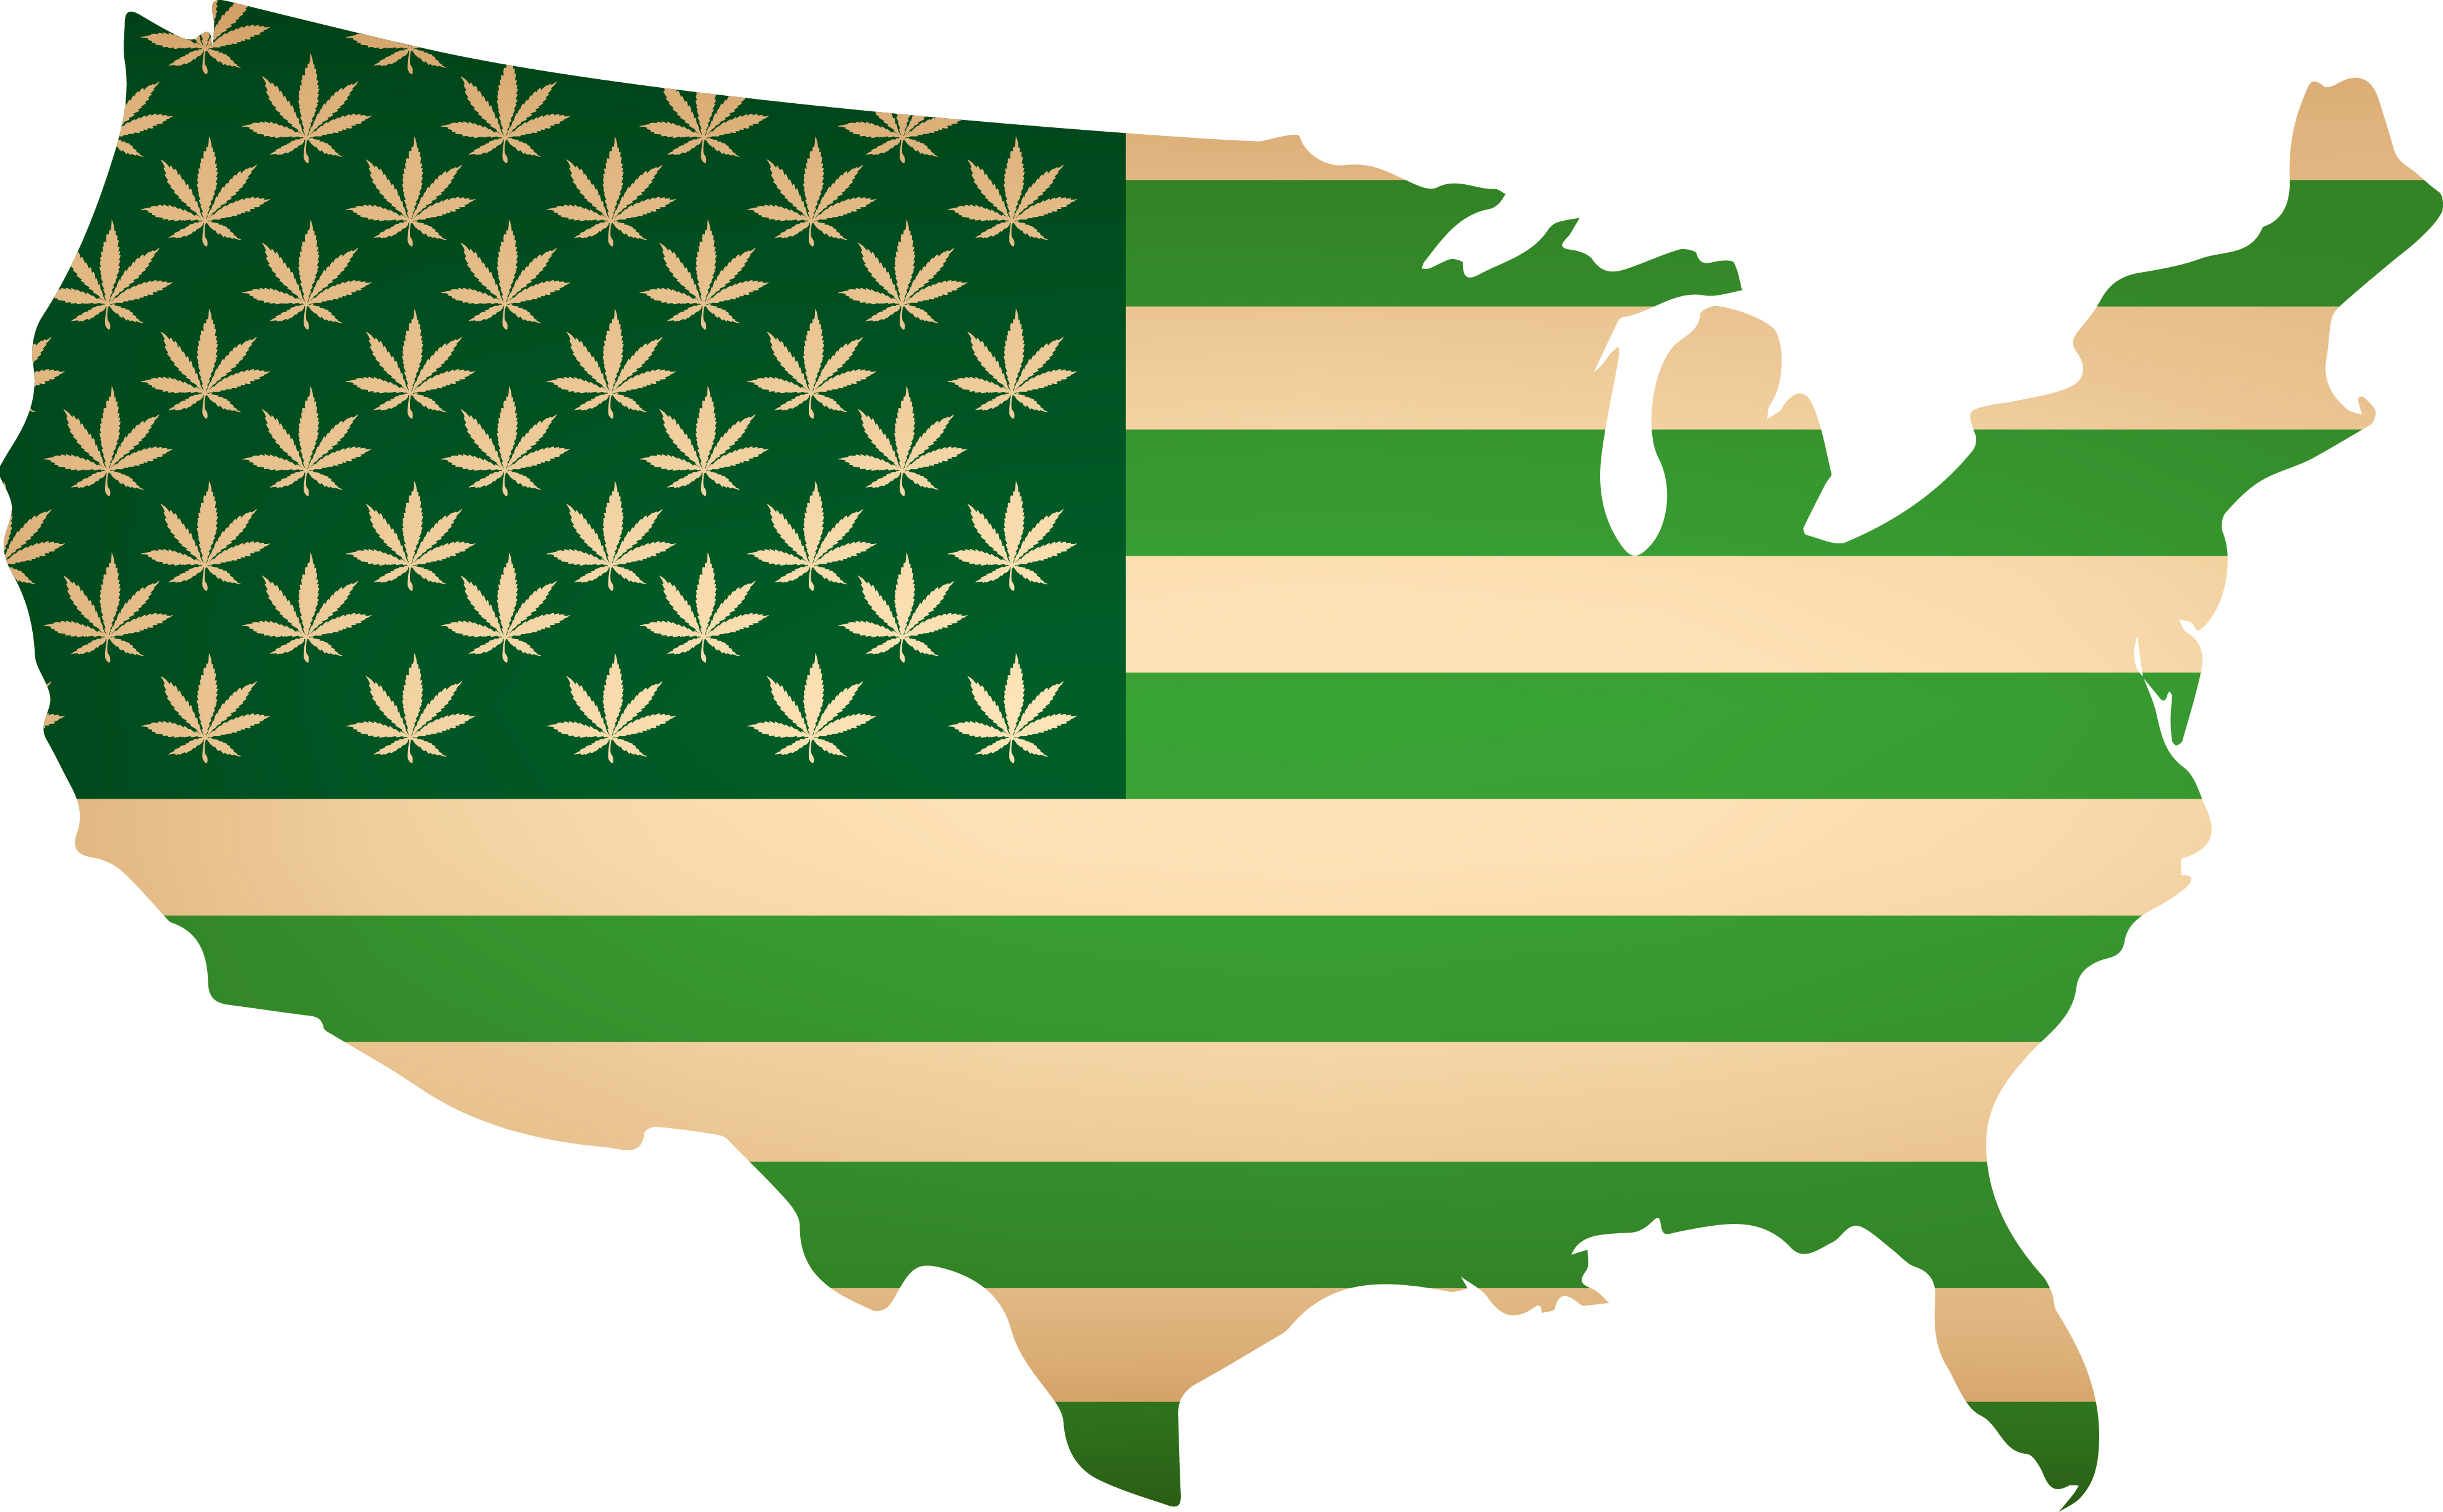 USA for Legalization